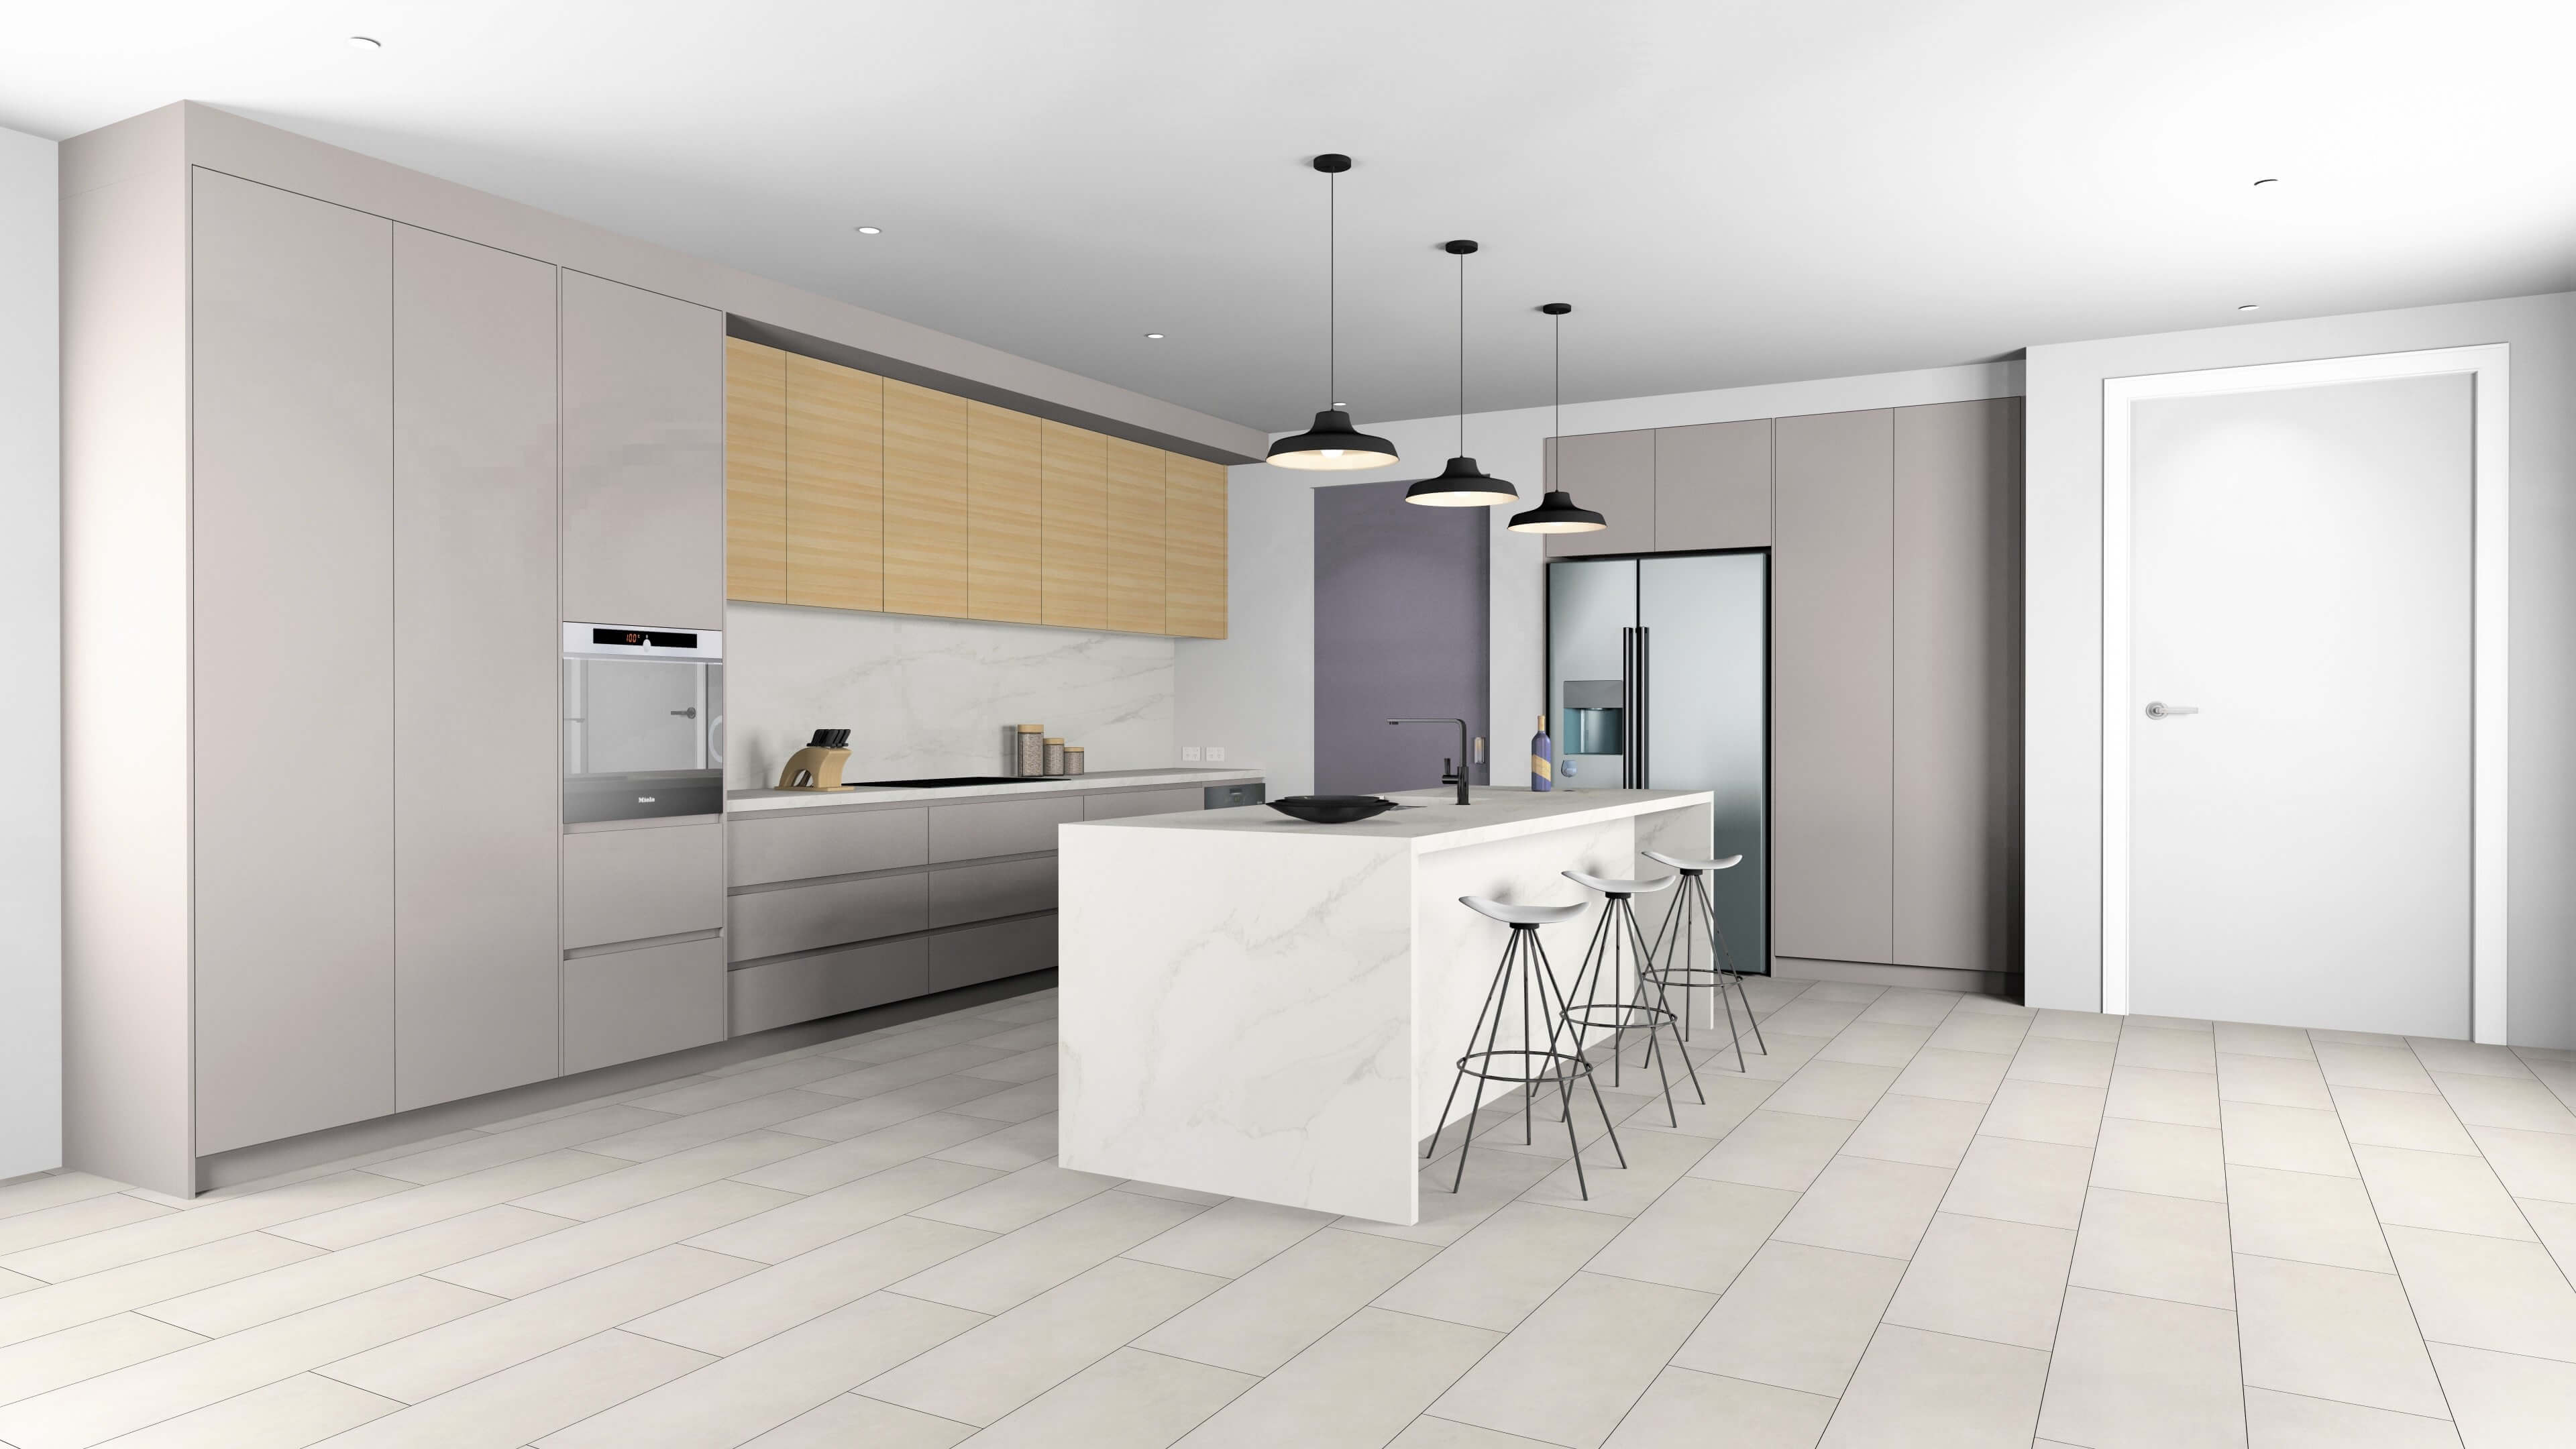 Rendered Kitchen using KD Max Software